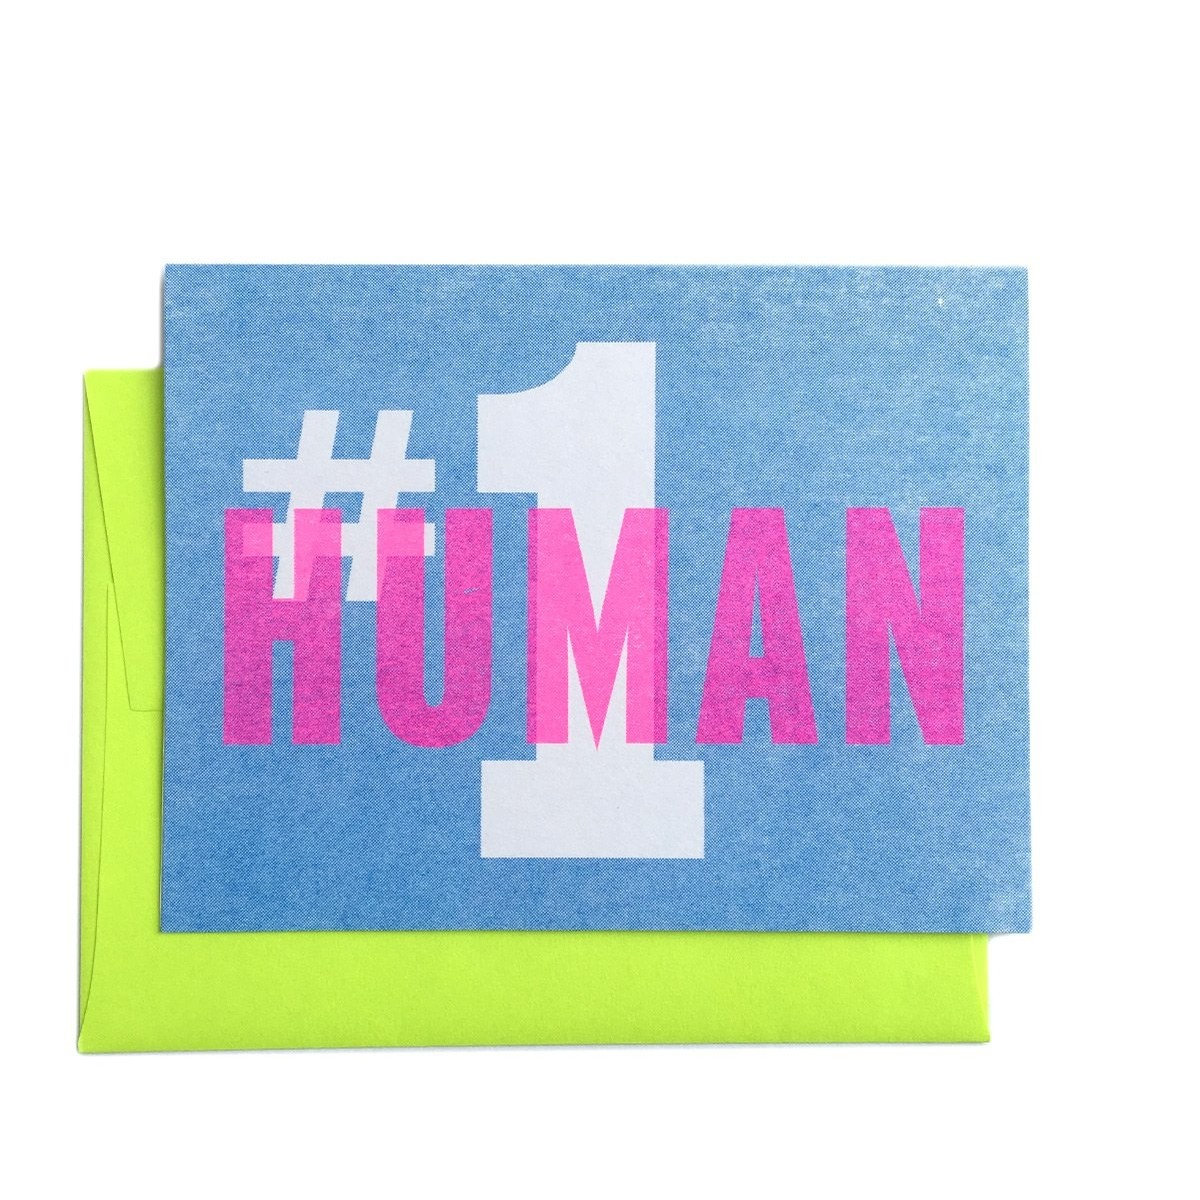 #1 Human Greeting Card